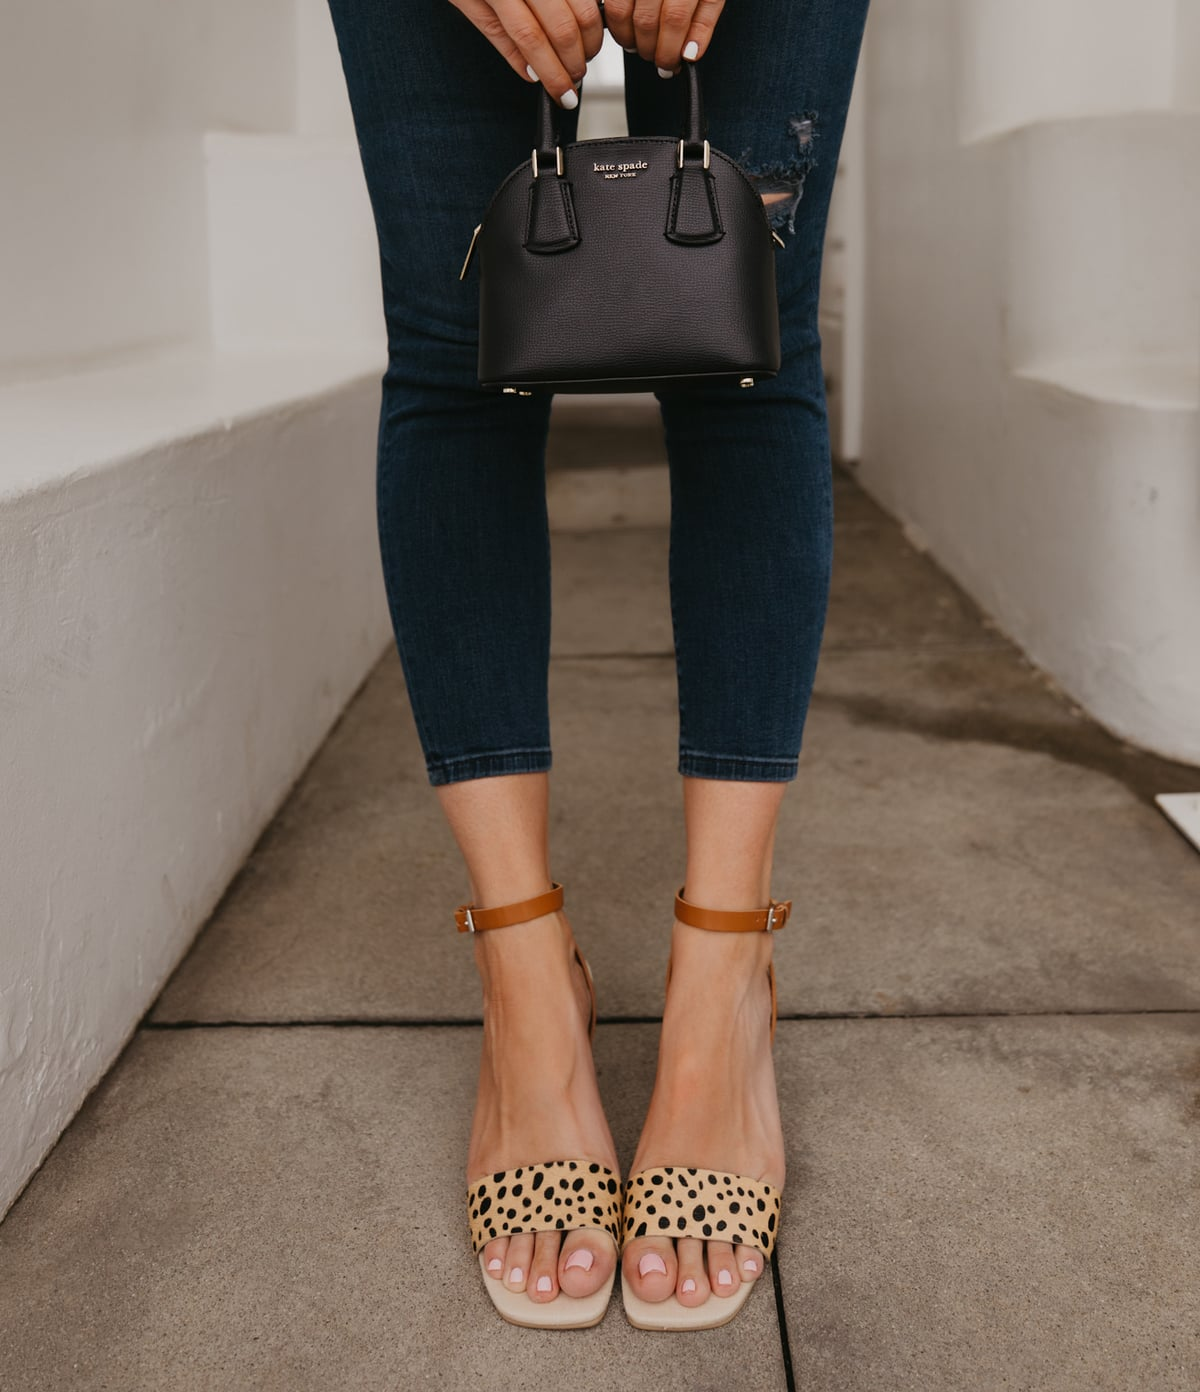 dolce vita leopard wedges for summer outfit